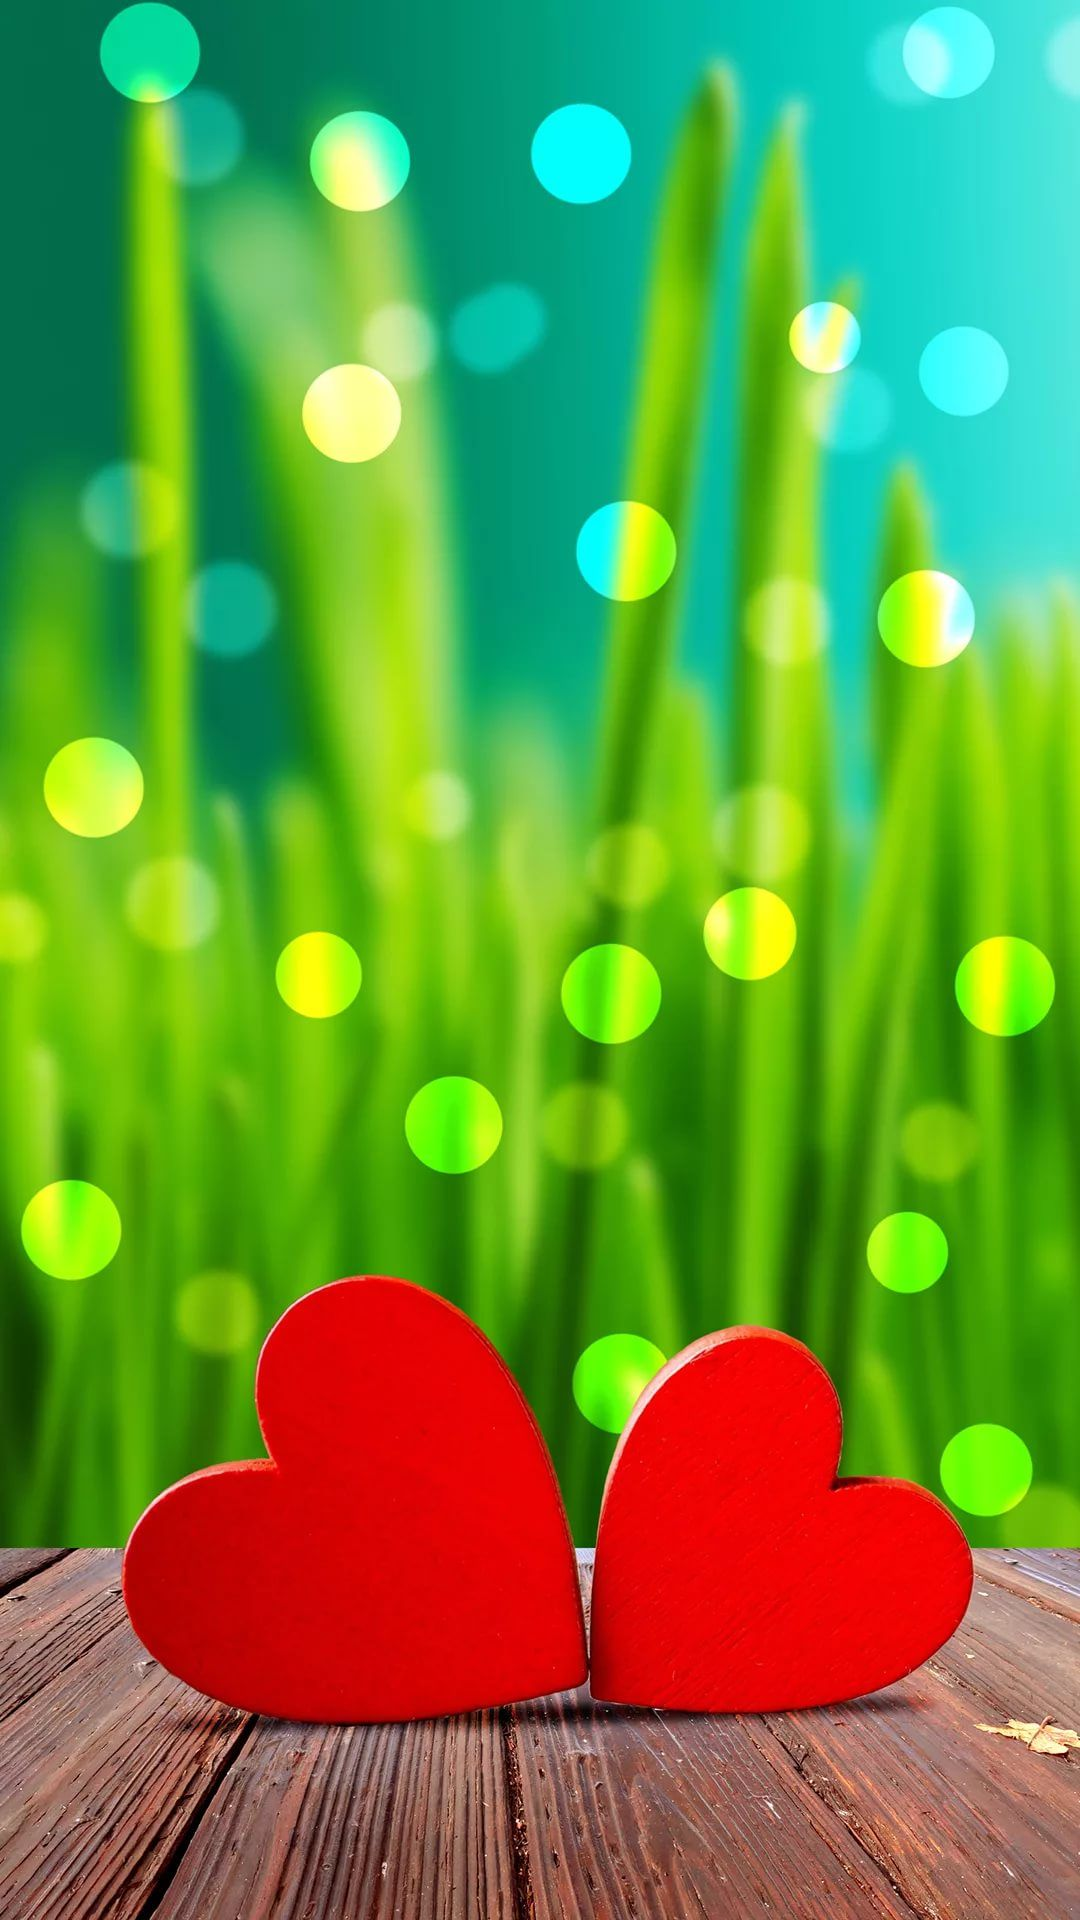 Cute Love Heart Pictures 20 Images Wallpaperboat